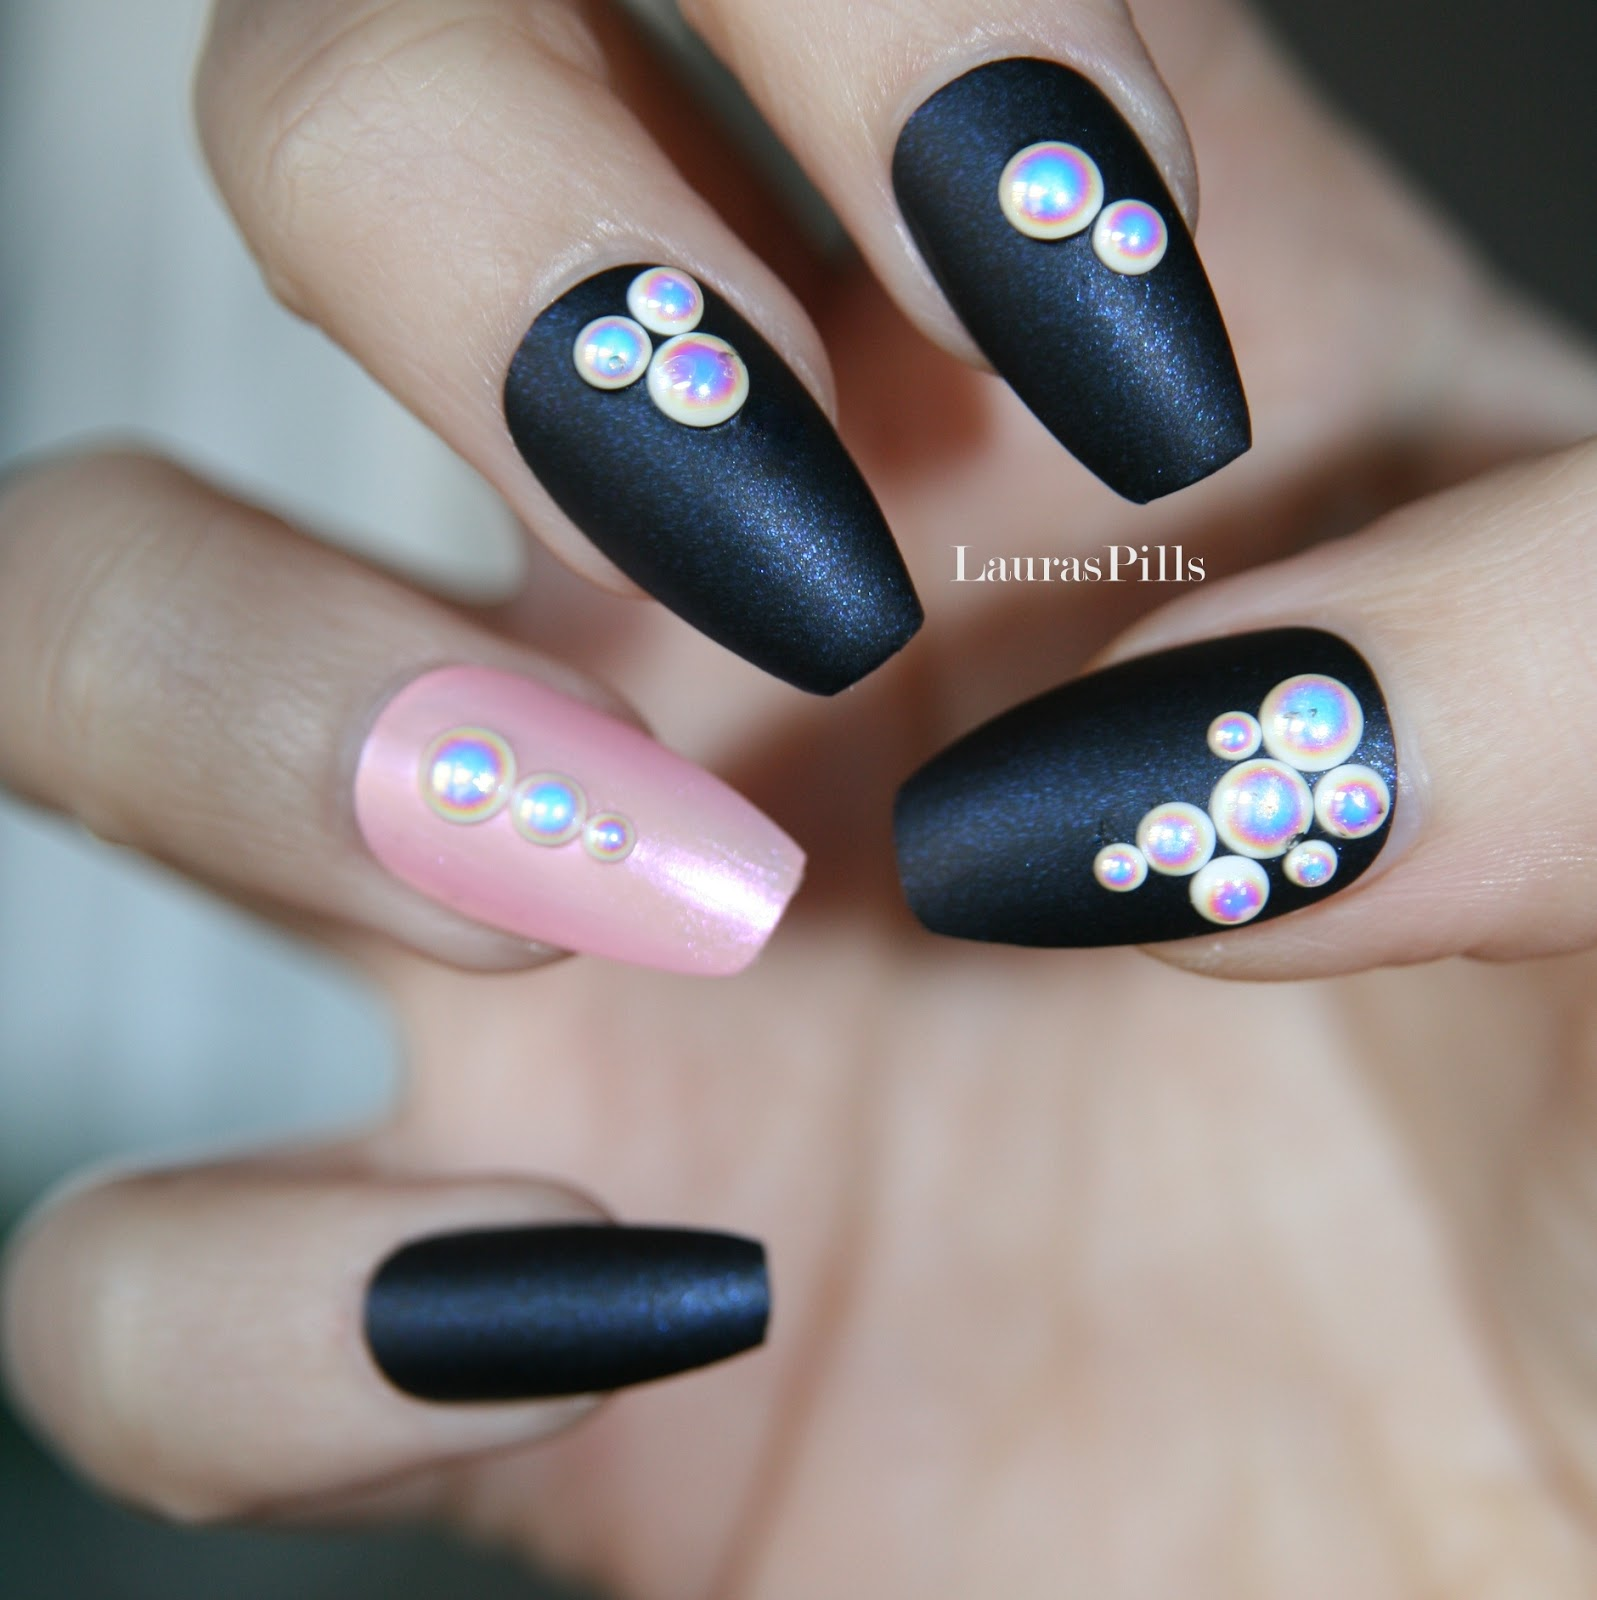 Laura\'s Pills: Elegant coffin nails with pearl decorations